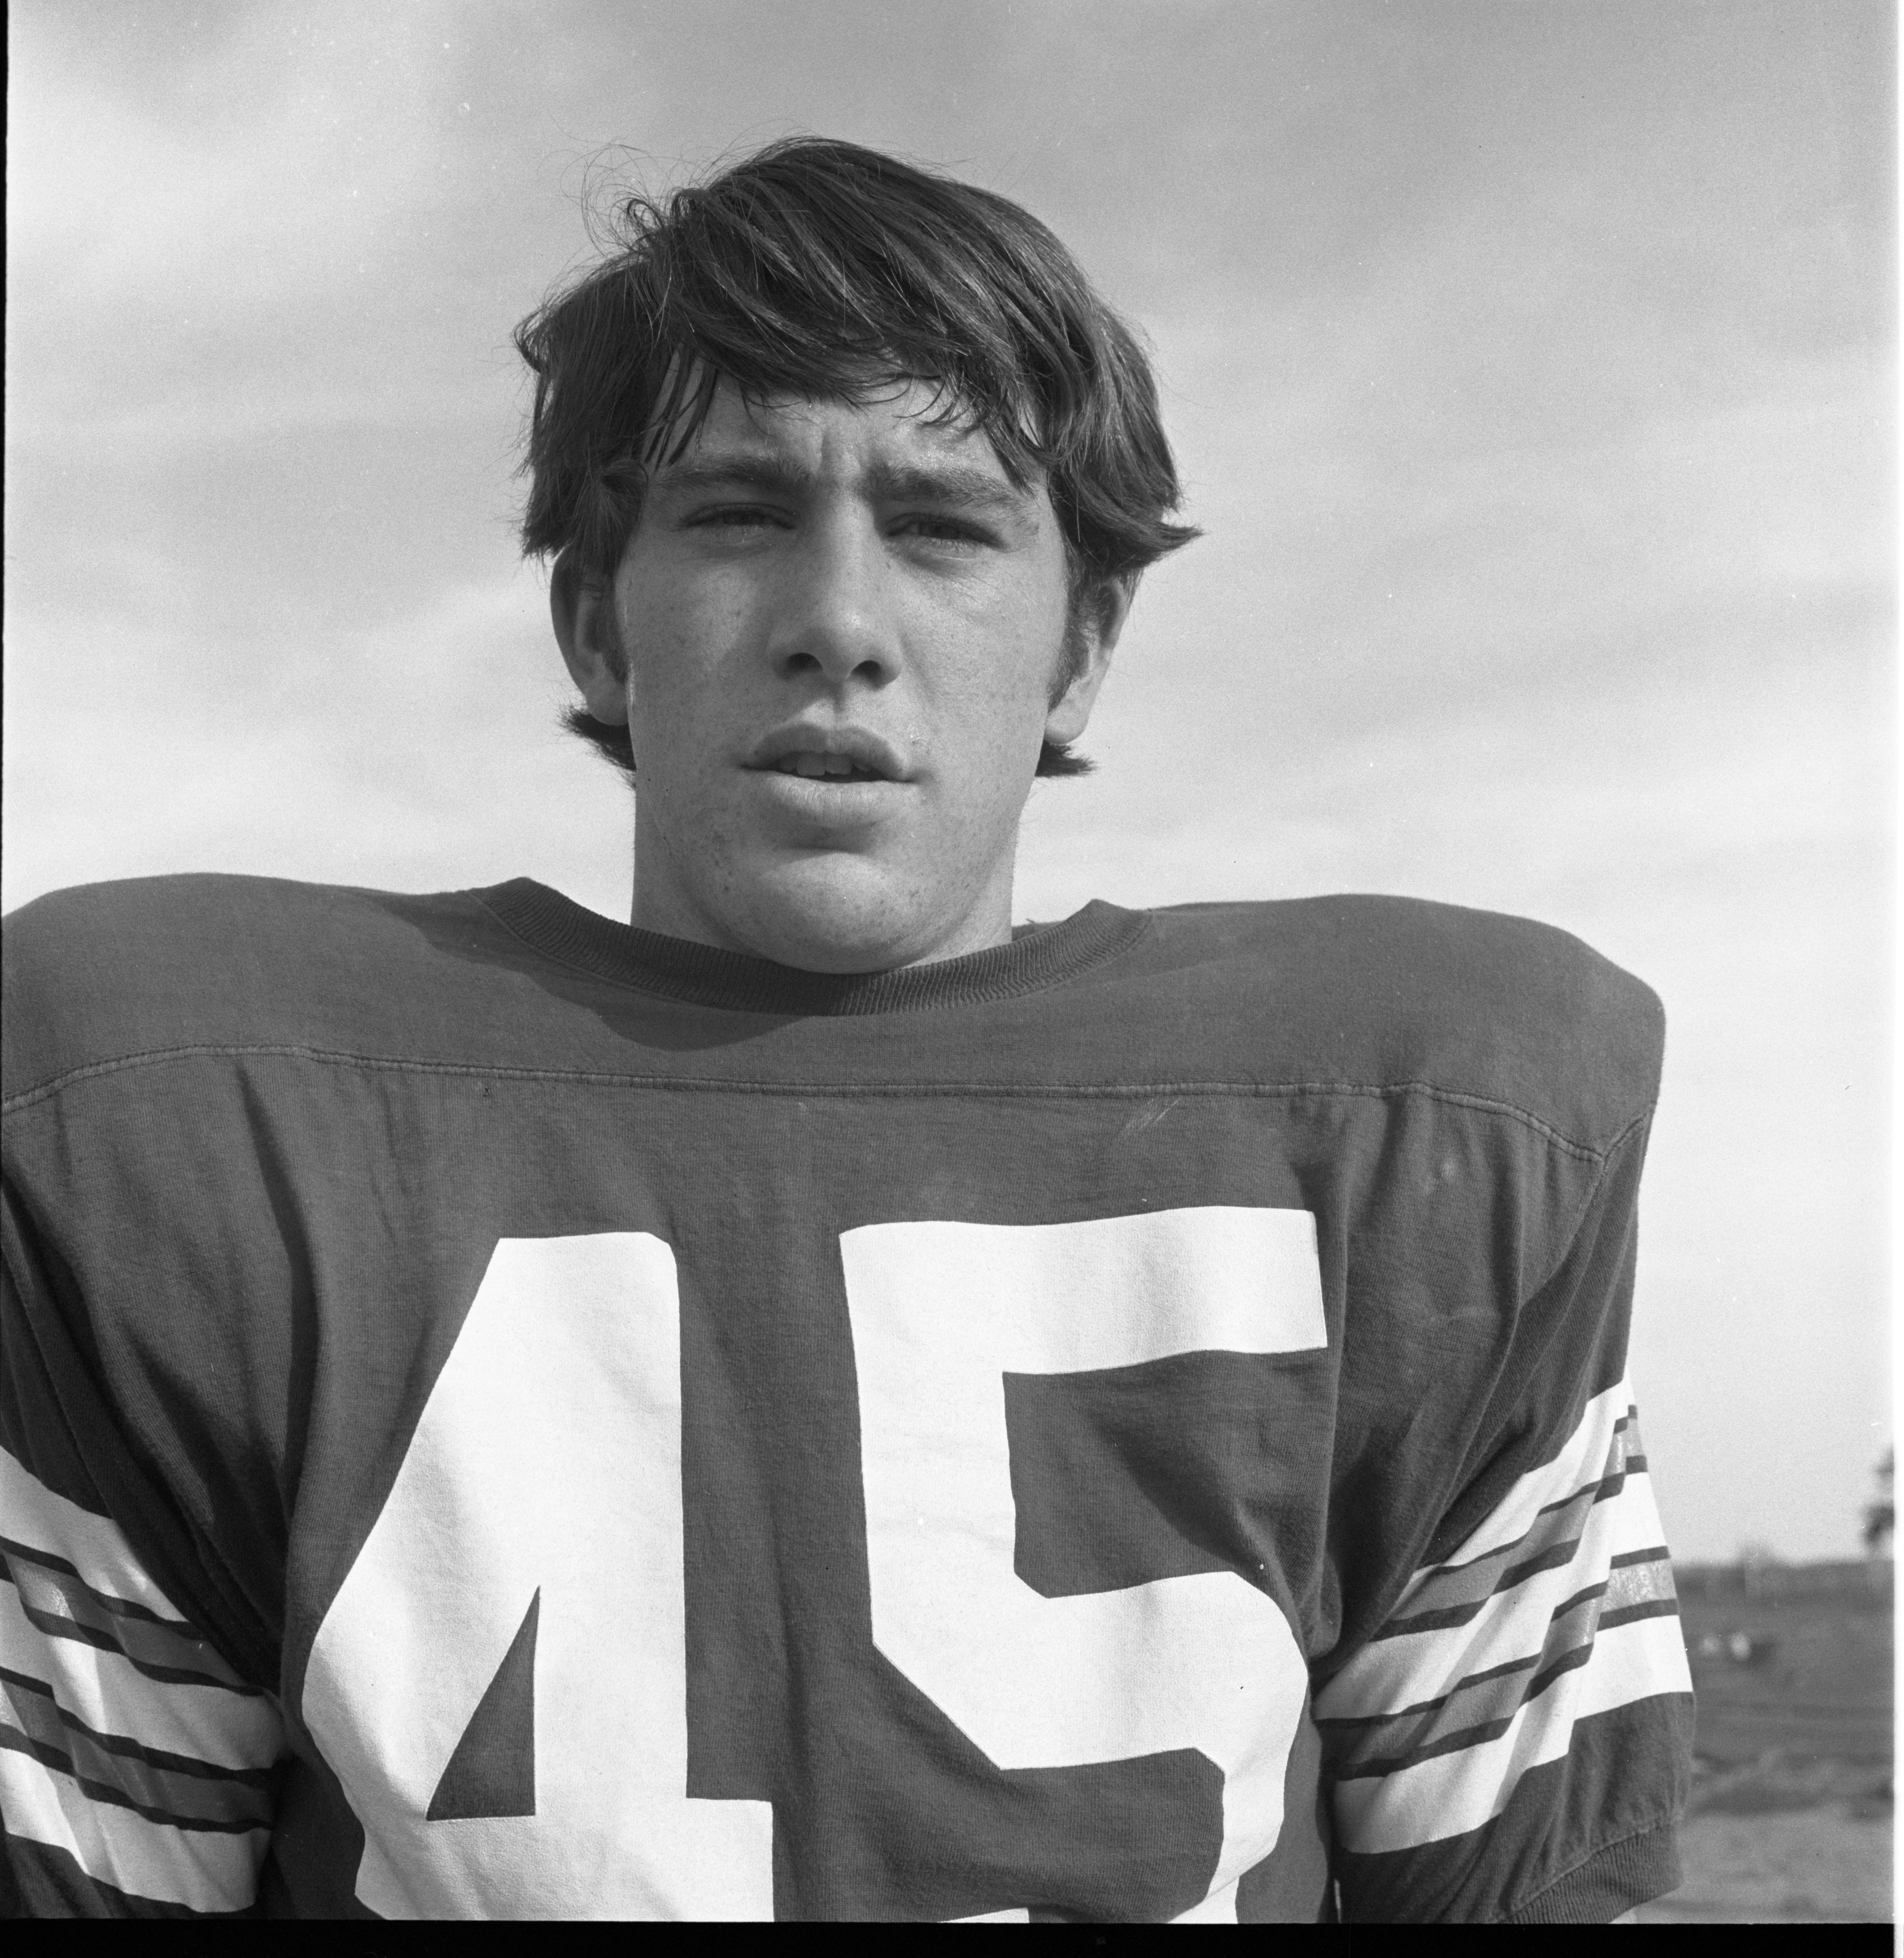 Mark Sayers - Huron High School Football Team, October 1970 image